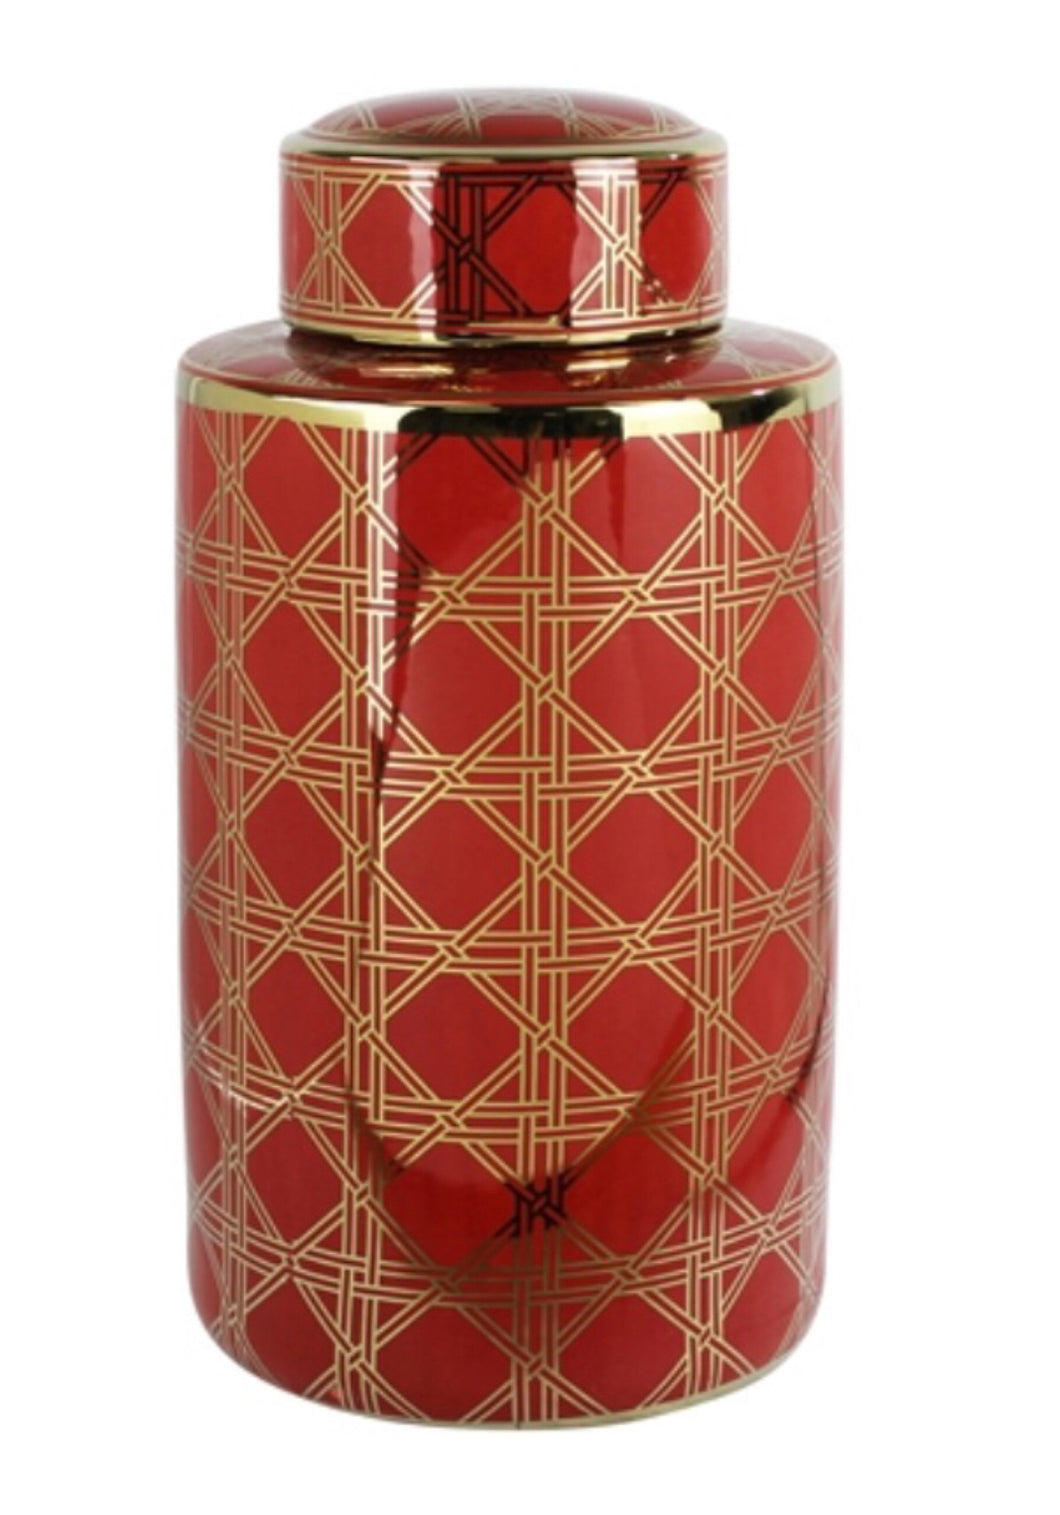 Decorative Ceramic Covered Jar